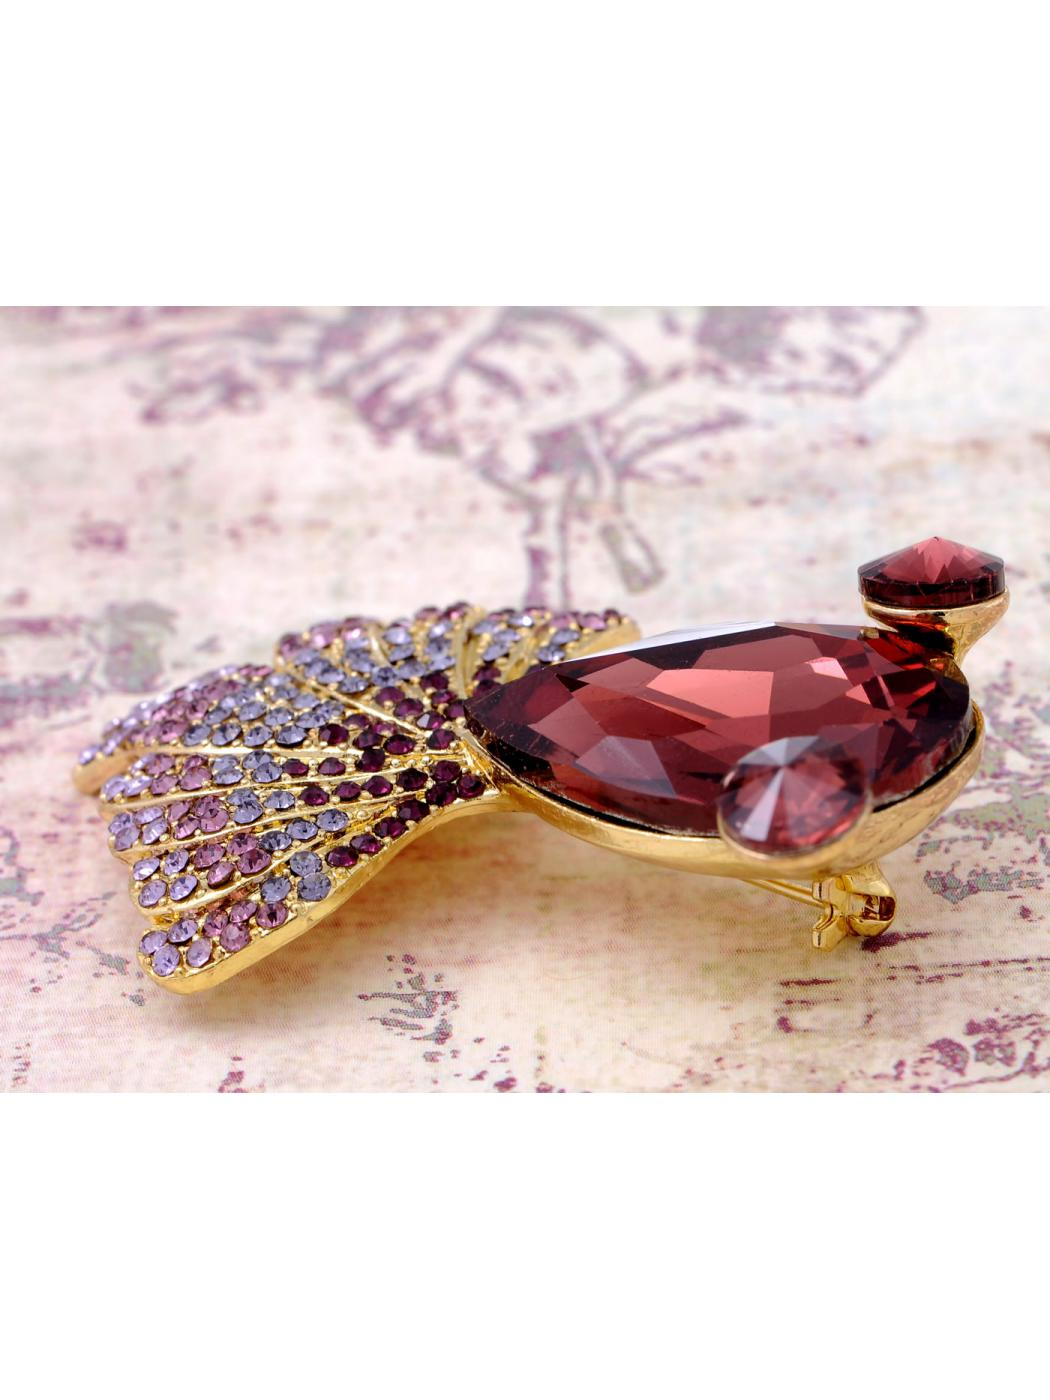 Golden Tone Metal Purple Gradient Tail Teardrop Body Cartoon Fish Pin Brooch by